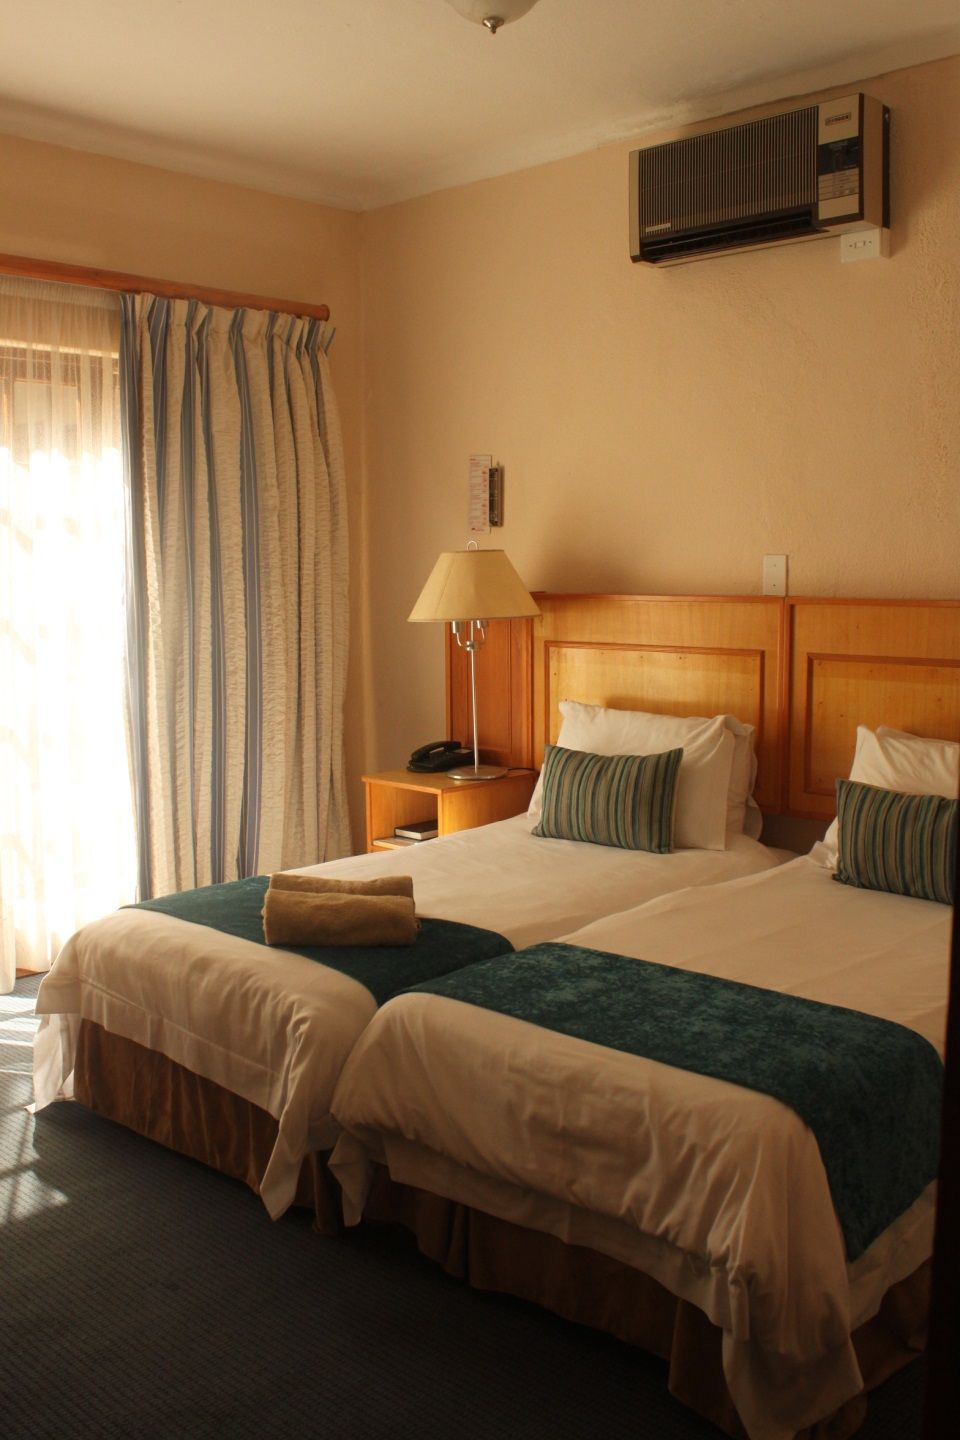 Twin Bed Hotel Room: The Wilderness Hotel, Wilderness